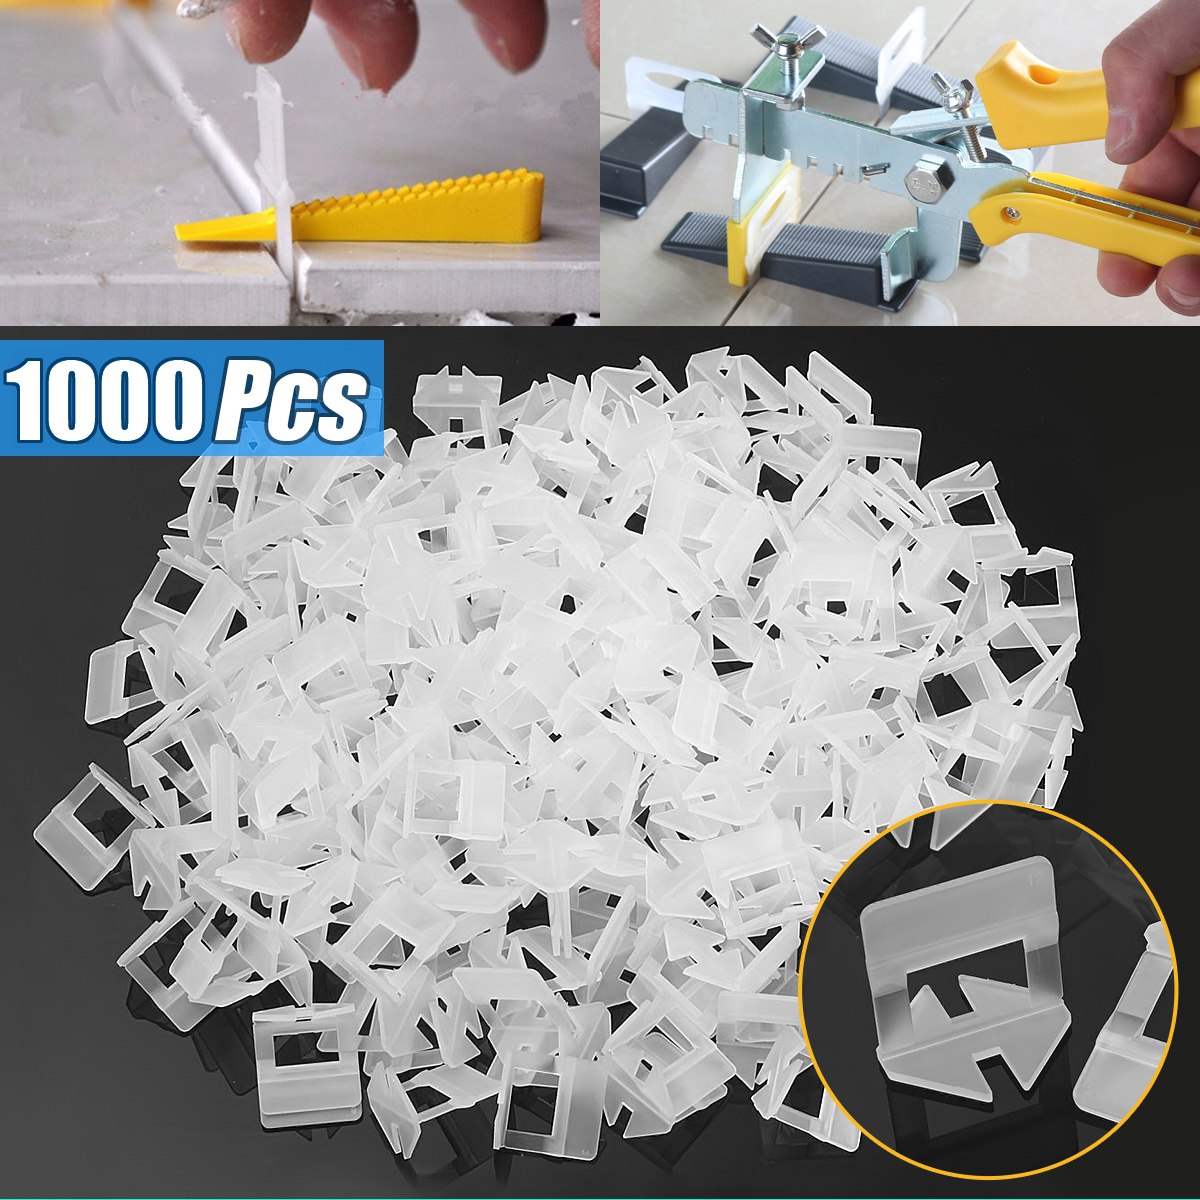 1000x 1.0mm White PE Plastic Tile Leveling System Clips Spacer Wall Tiling Flooring Tool